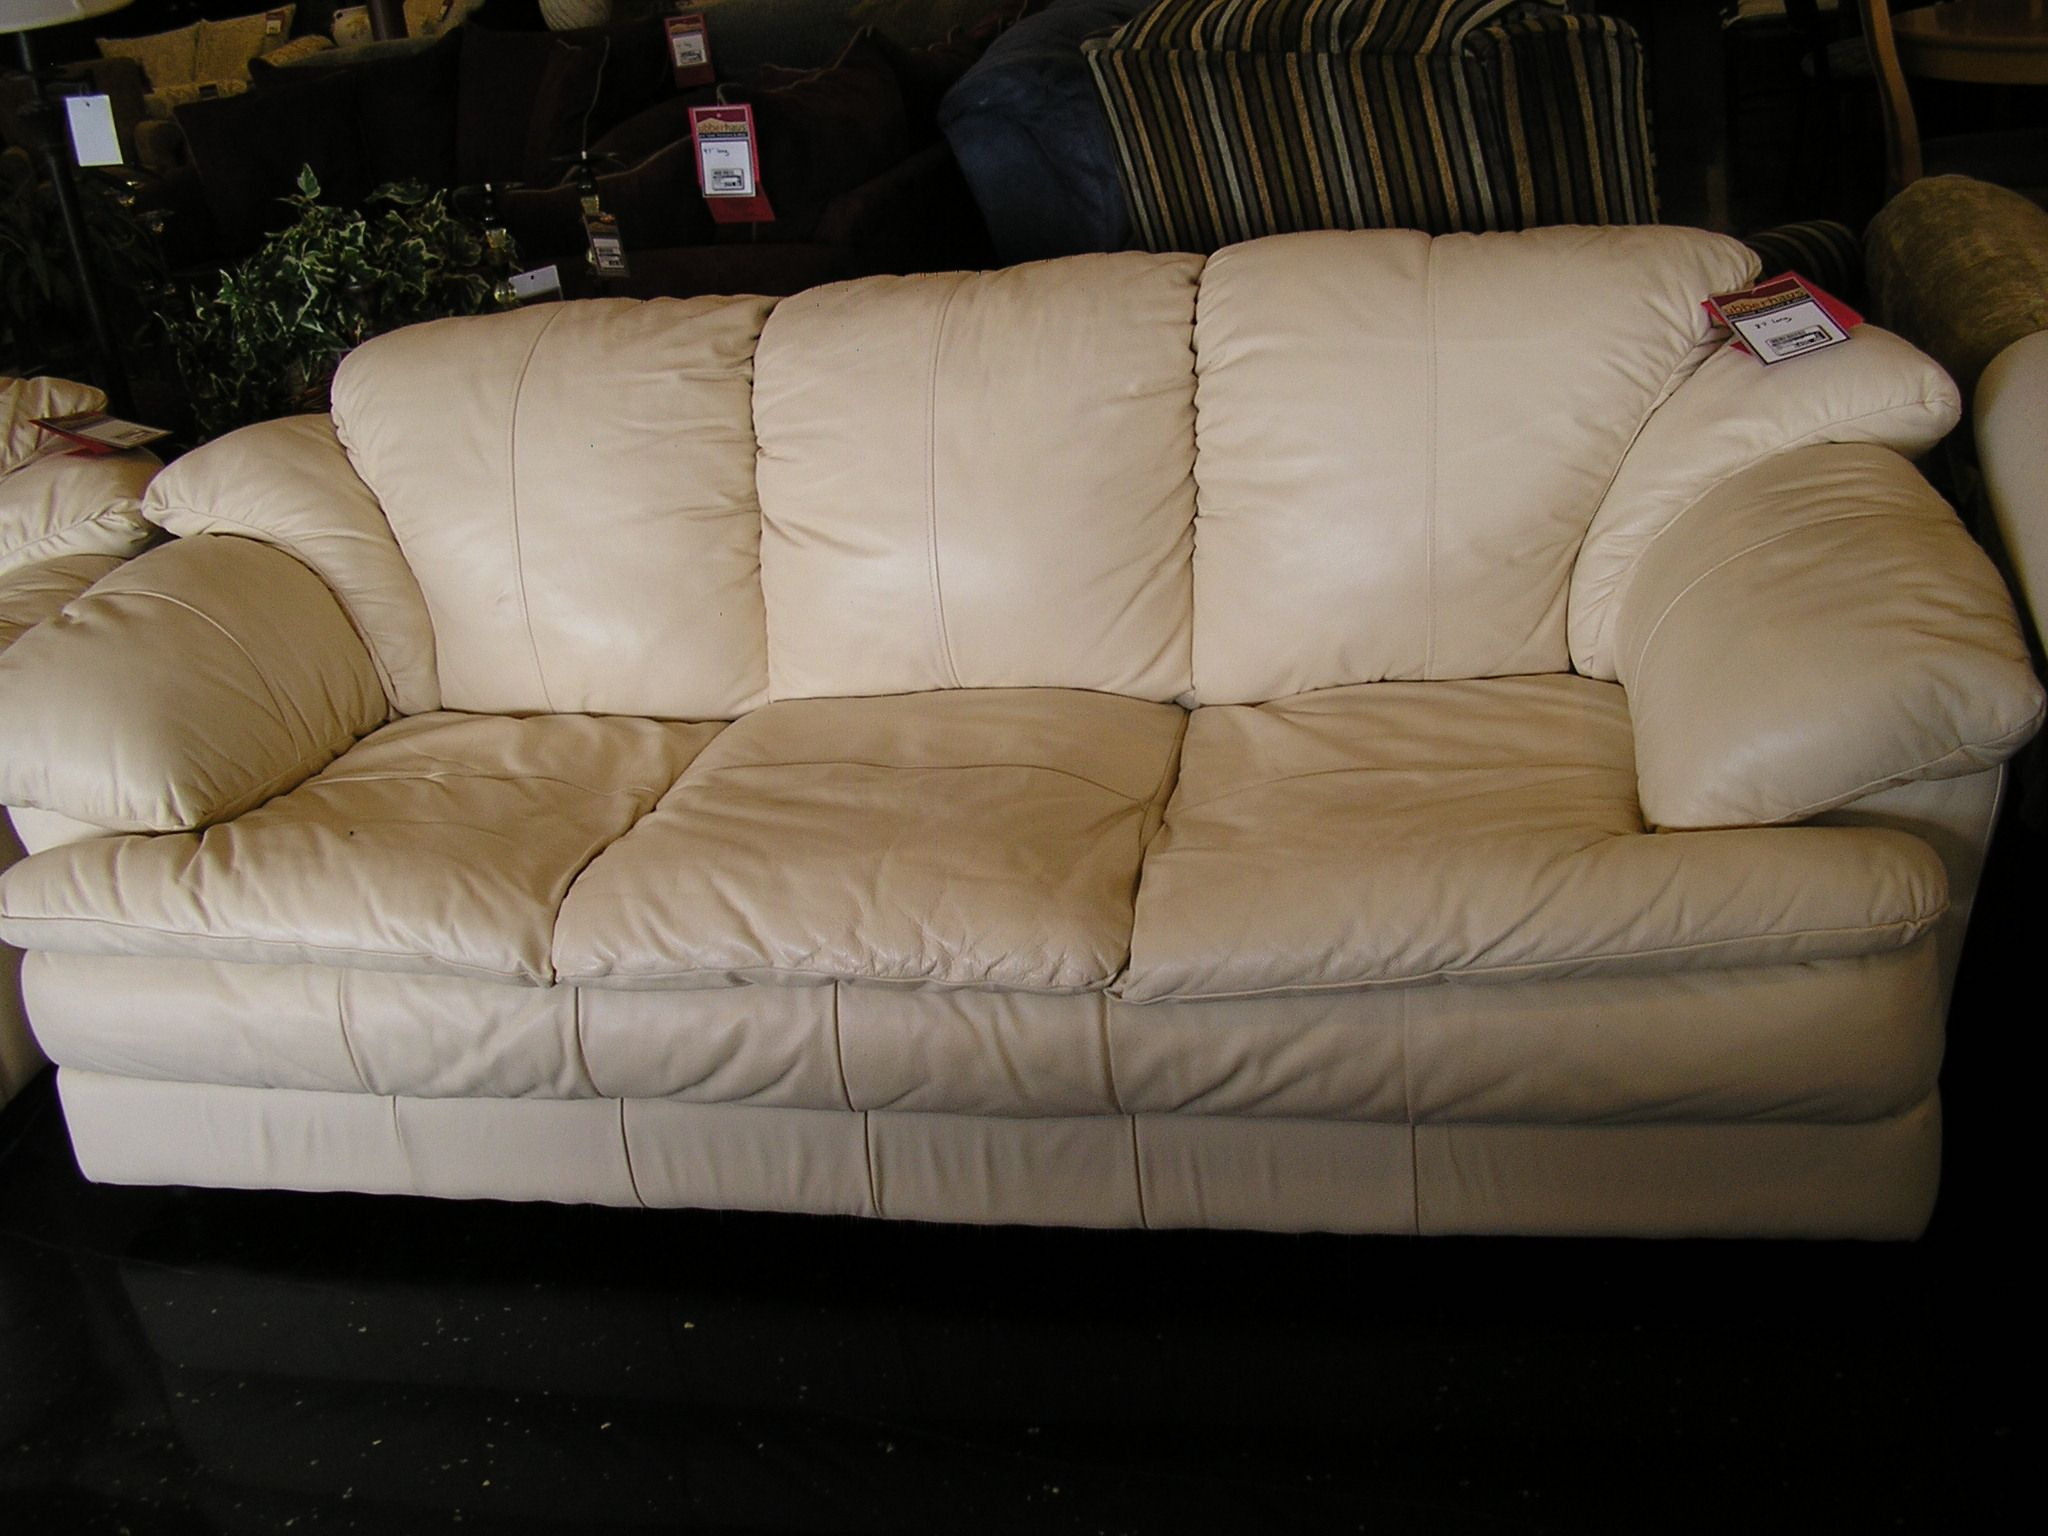 From Ubberhaus, A Cream Colored Leather Sofa For Only $495 Intended For Cream Colored Sofas (View 10 of 15)